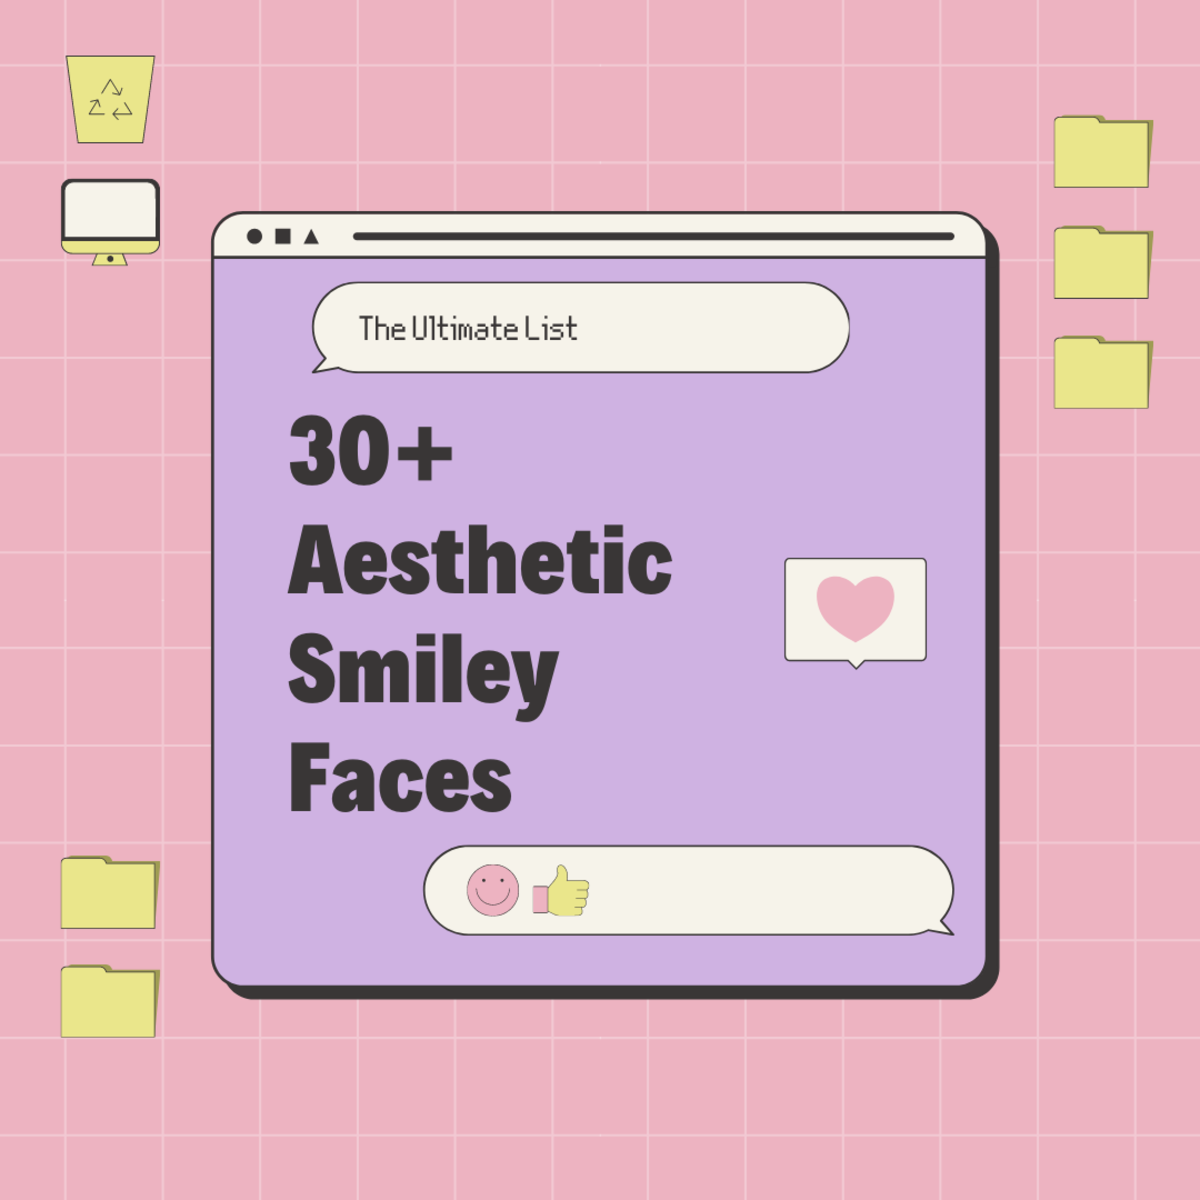 Discover 30+ aesthetic smiley faces in this in-depth guide!